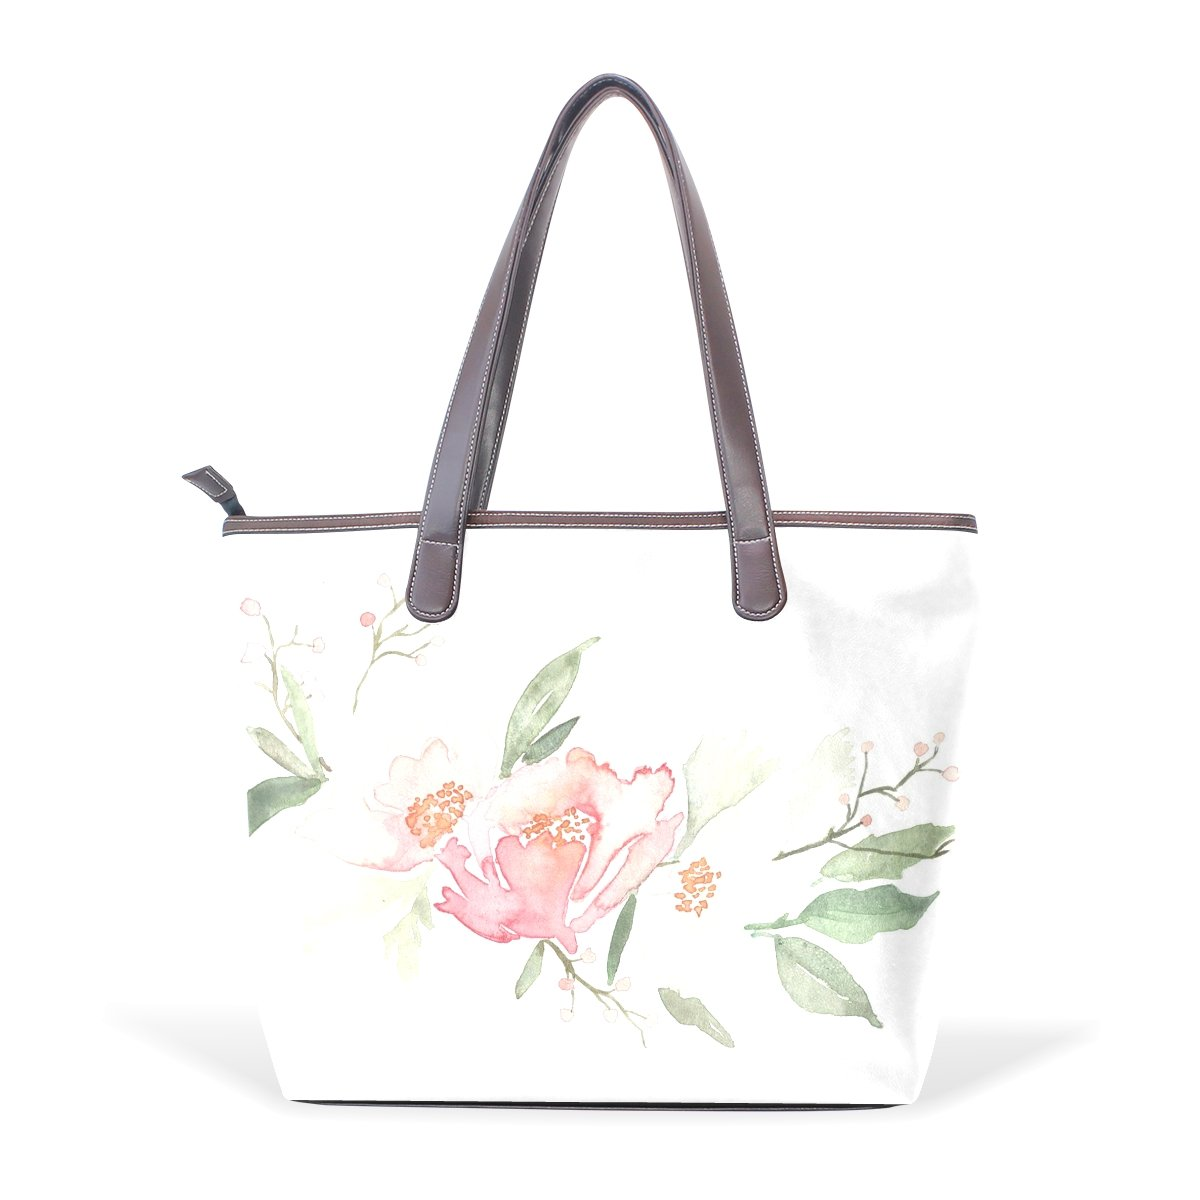 SCDS Corner Floral PU Leather Lady Handbag Tote Bag Zipper Shoulder Bag